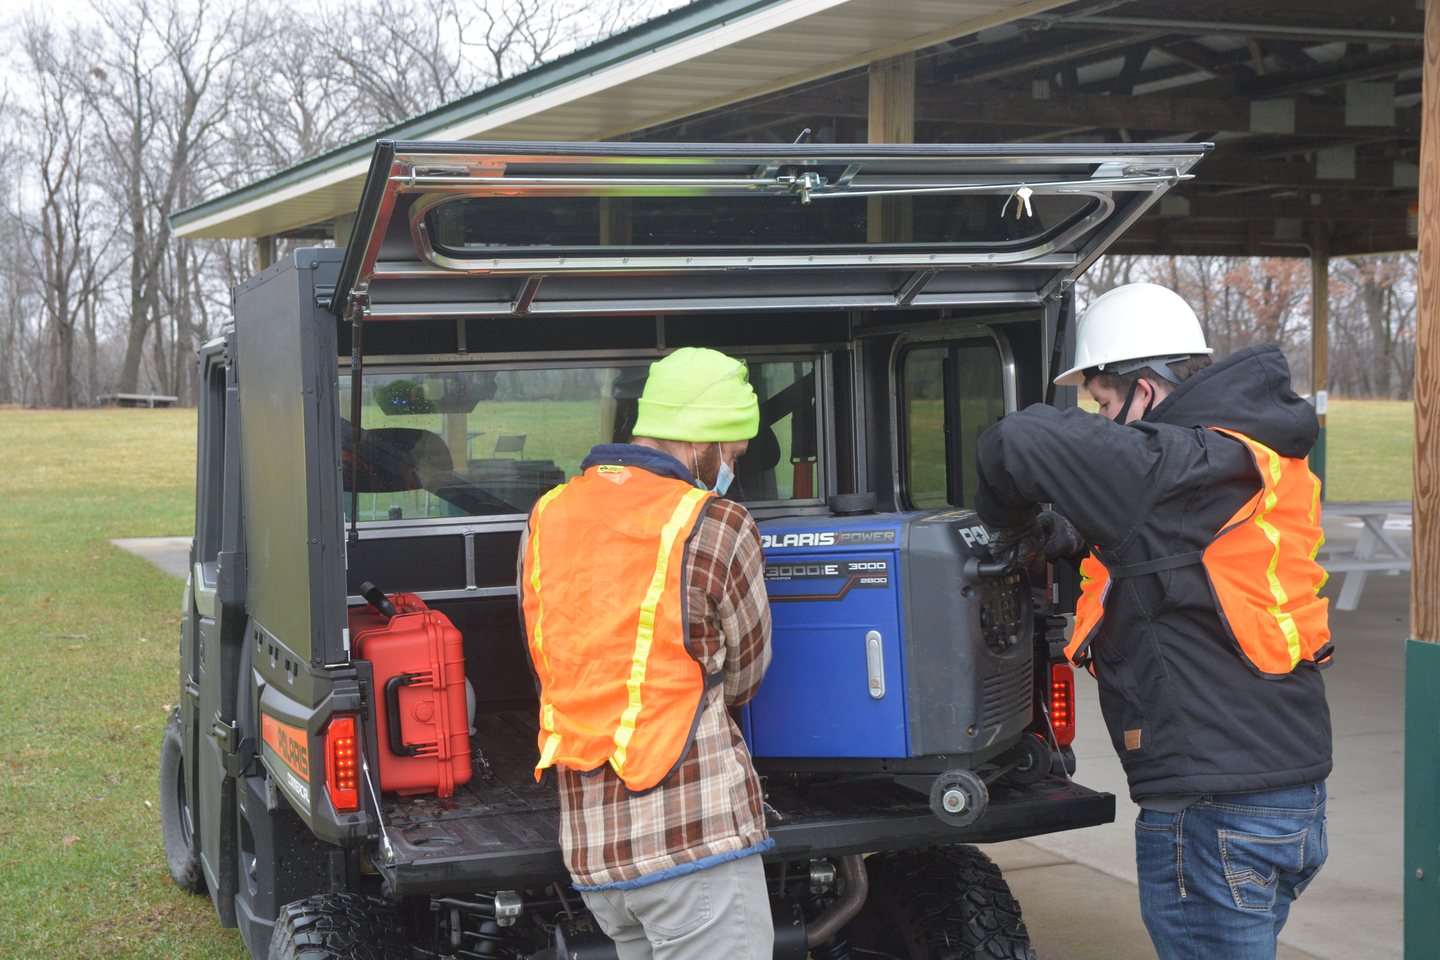 Accessories are often added to utility vehicles for commercial applications, like cabs, keyless start, straight shift, telematics, work lights, strobe beacons, RAC systems for the cargo box and sweepers.